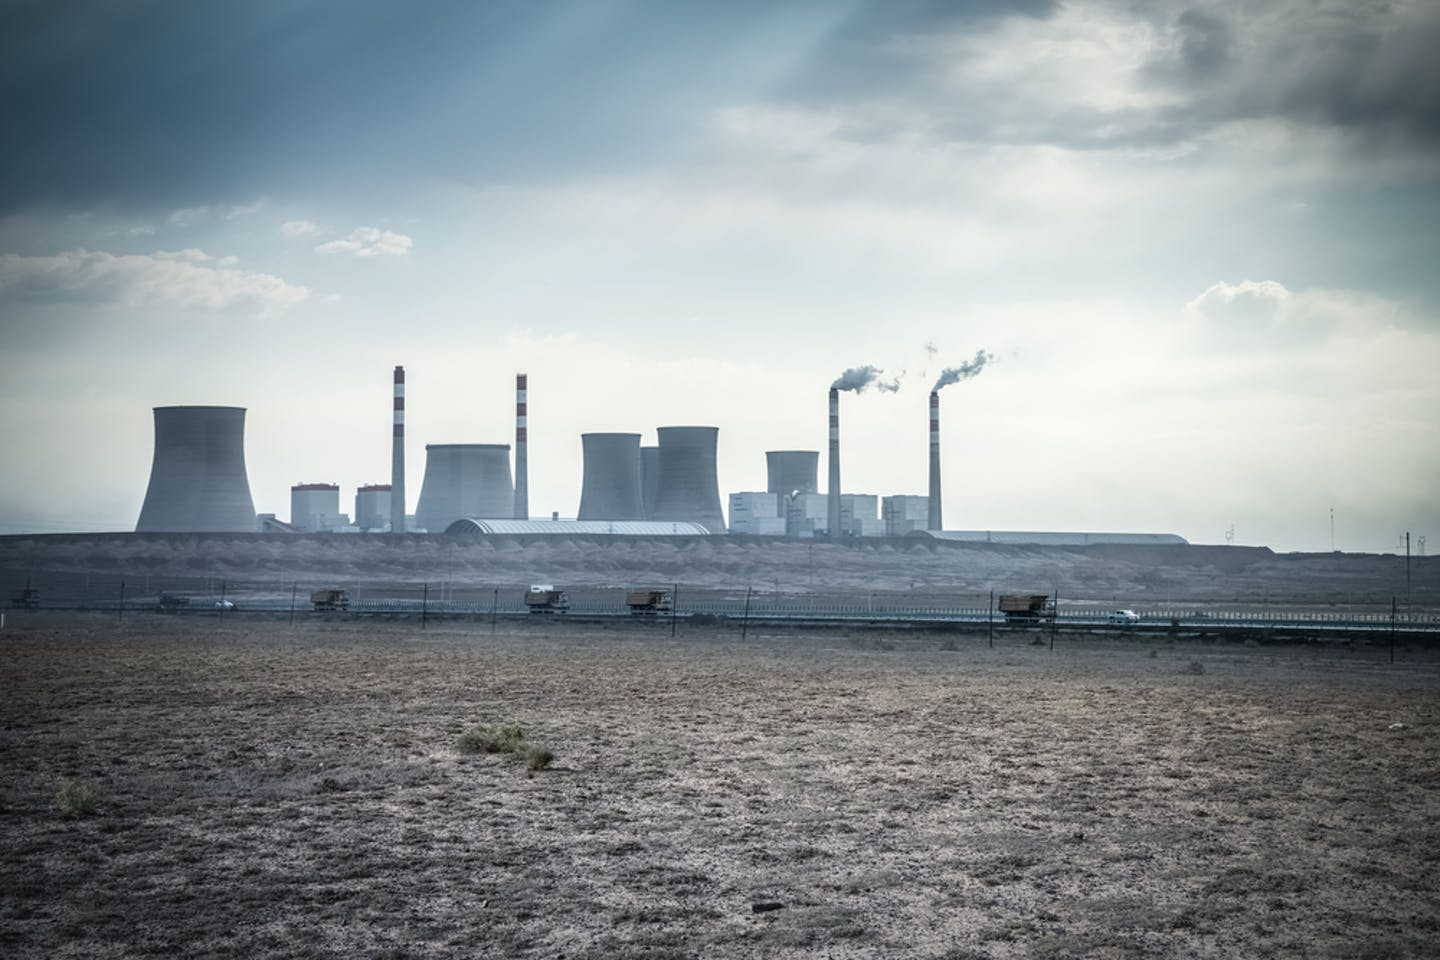 Thermal power station in Xinjiang, China